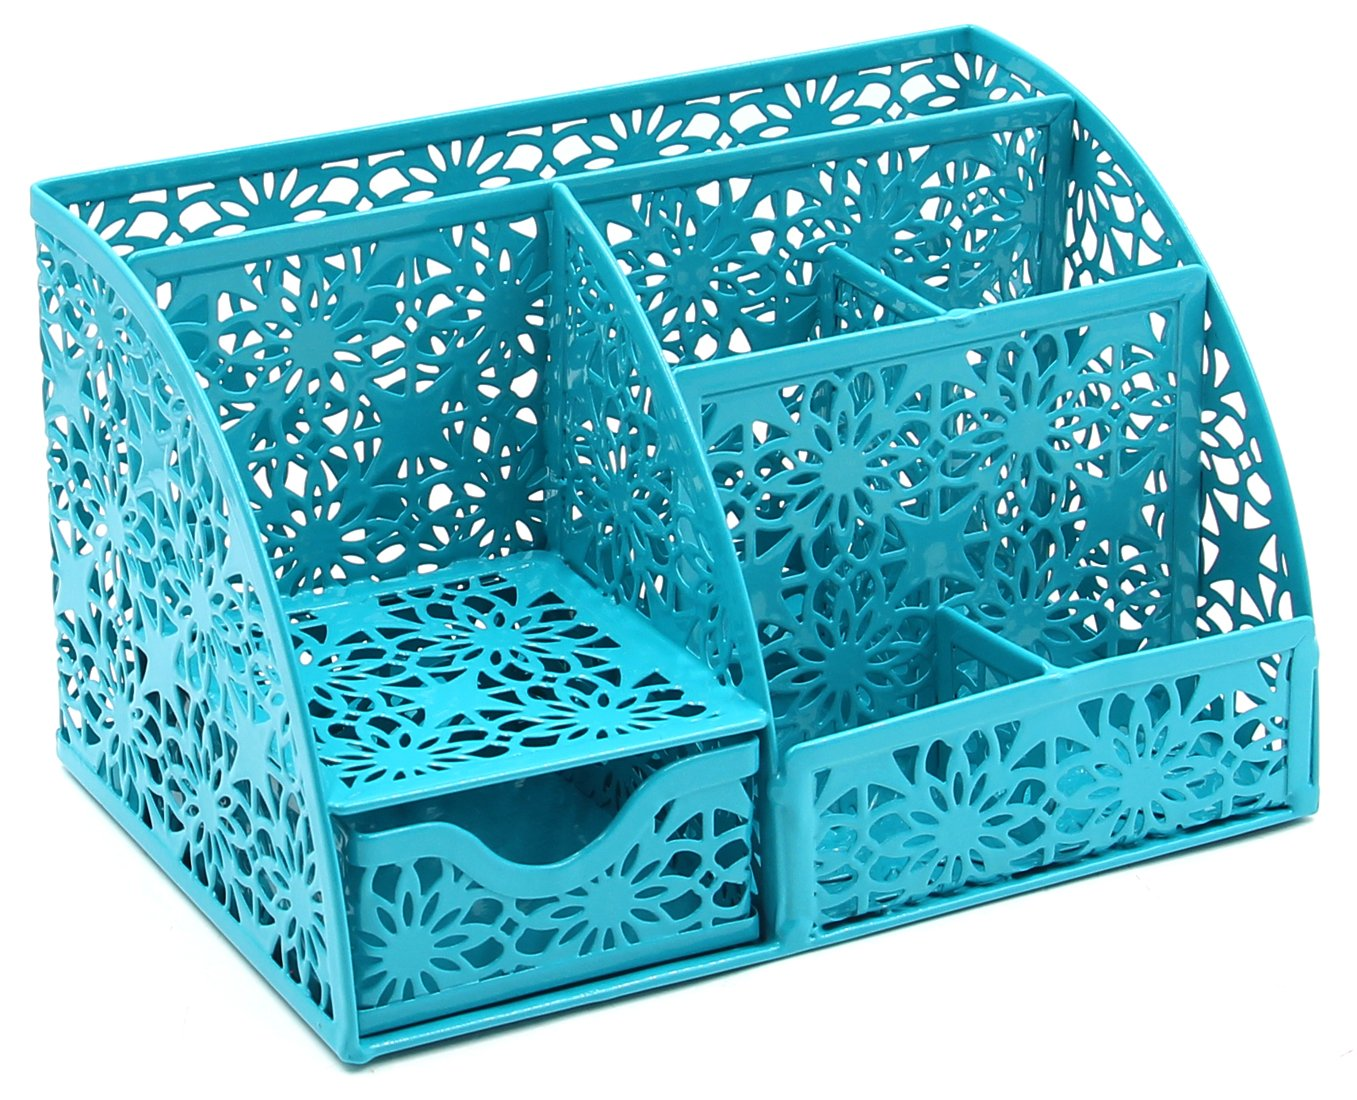 EasyPAG Cute Office Desk Organizer Hollow Flower Pattern 6 Compartments Desktop Accessories Caddy with Drawer,Dark Teal